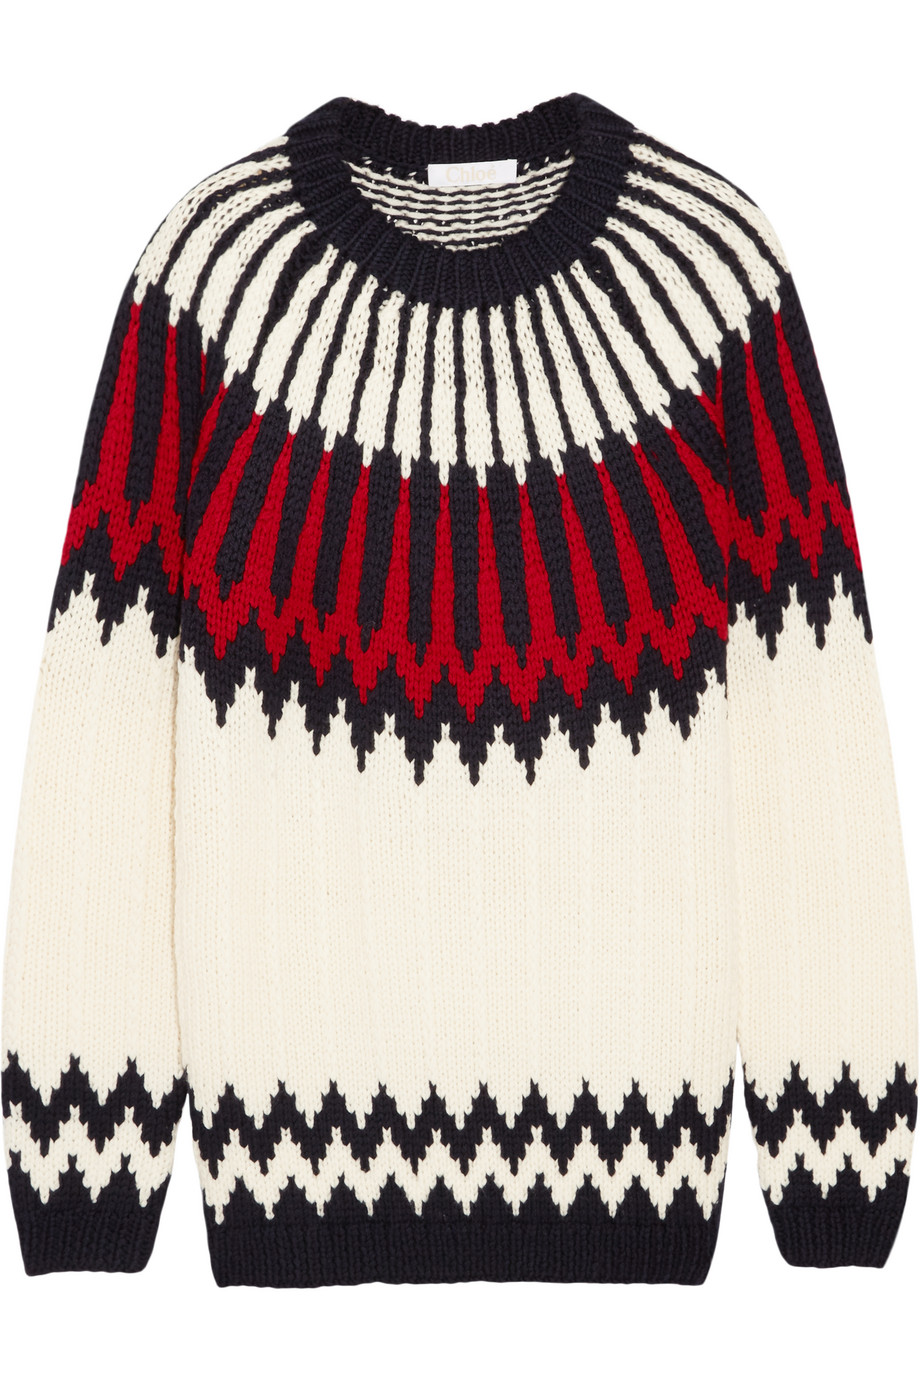 Chloé Snow Capsule Intarsia Wool Sweater, Cream, Women's, Size: L